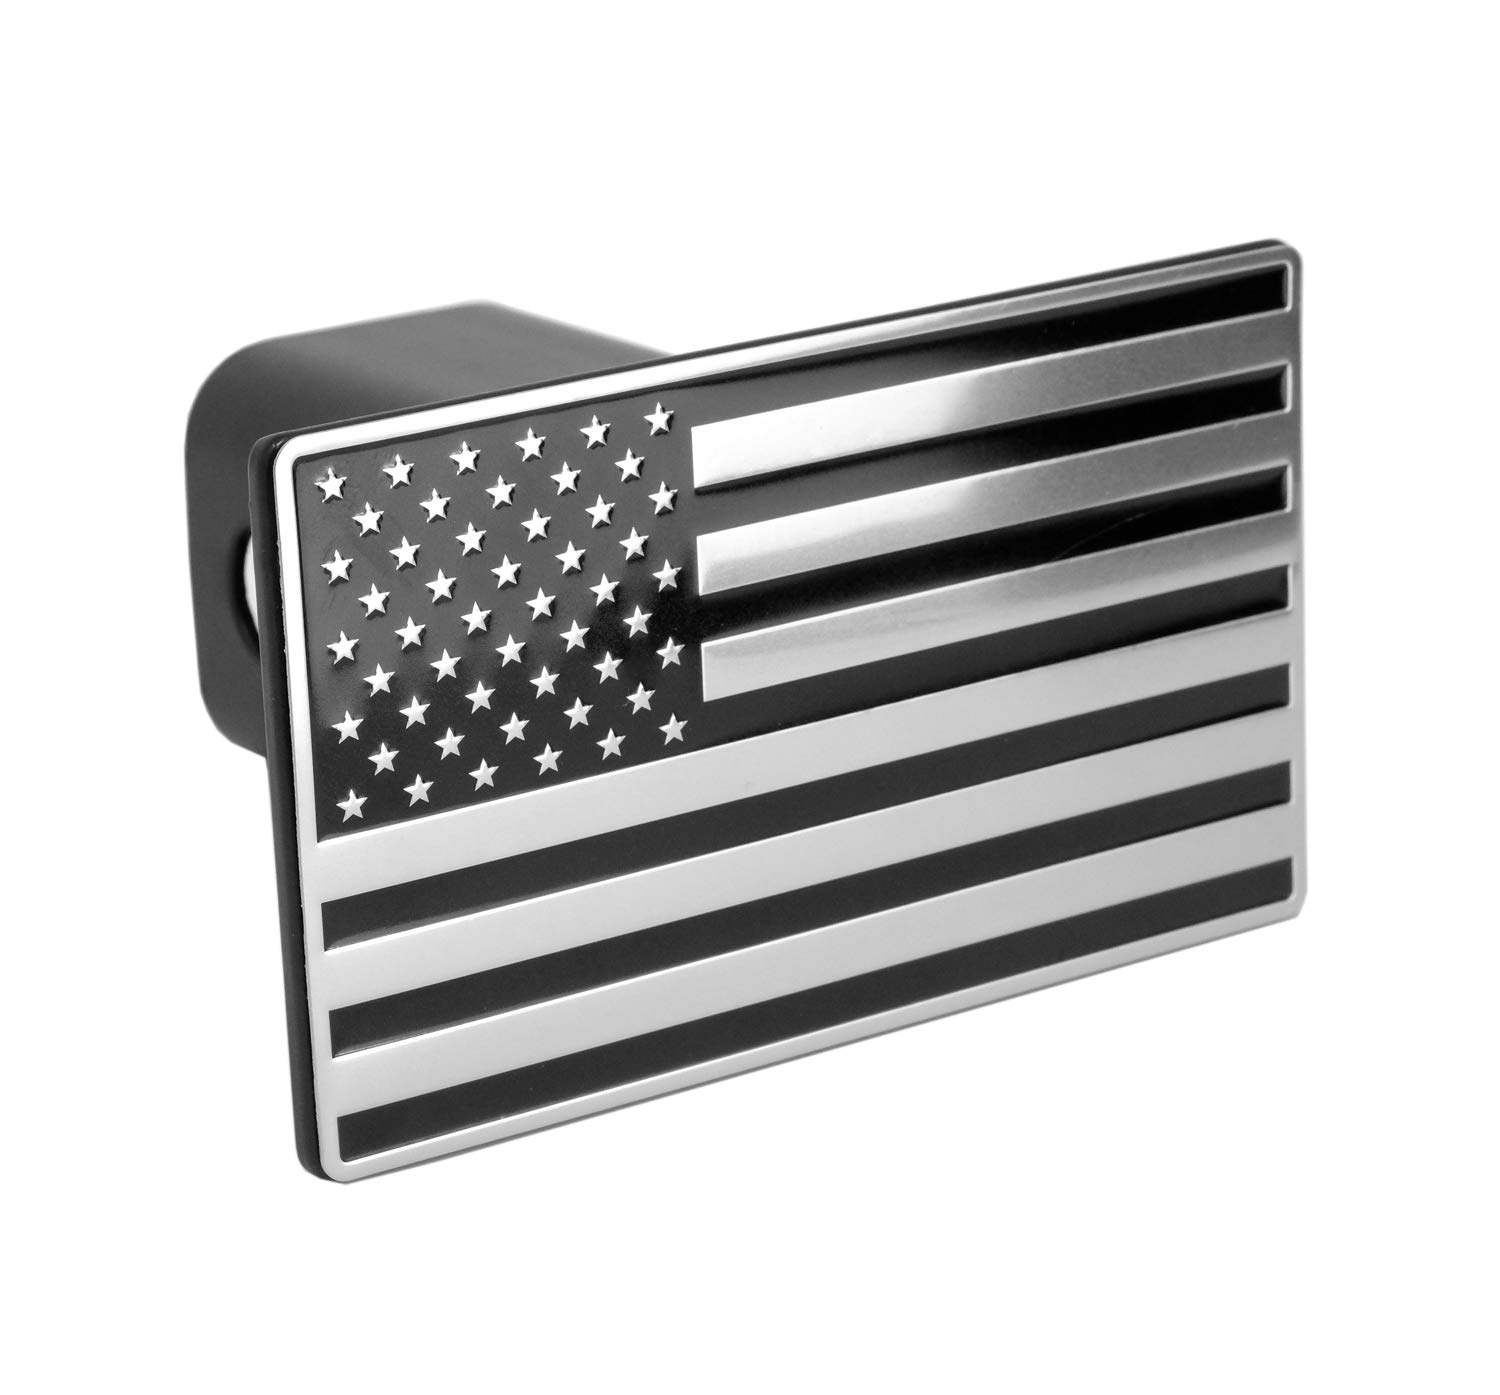 Fits 2 Receivers, Black LFPartS USA US American Flag Emblem Metal Trailer Hitch Cover